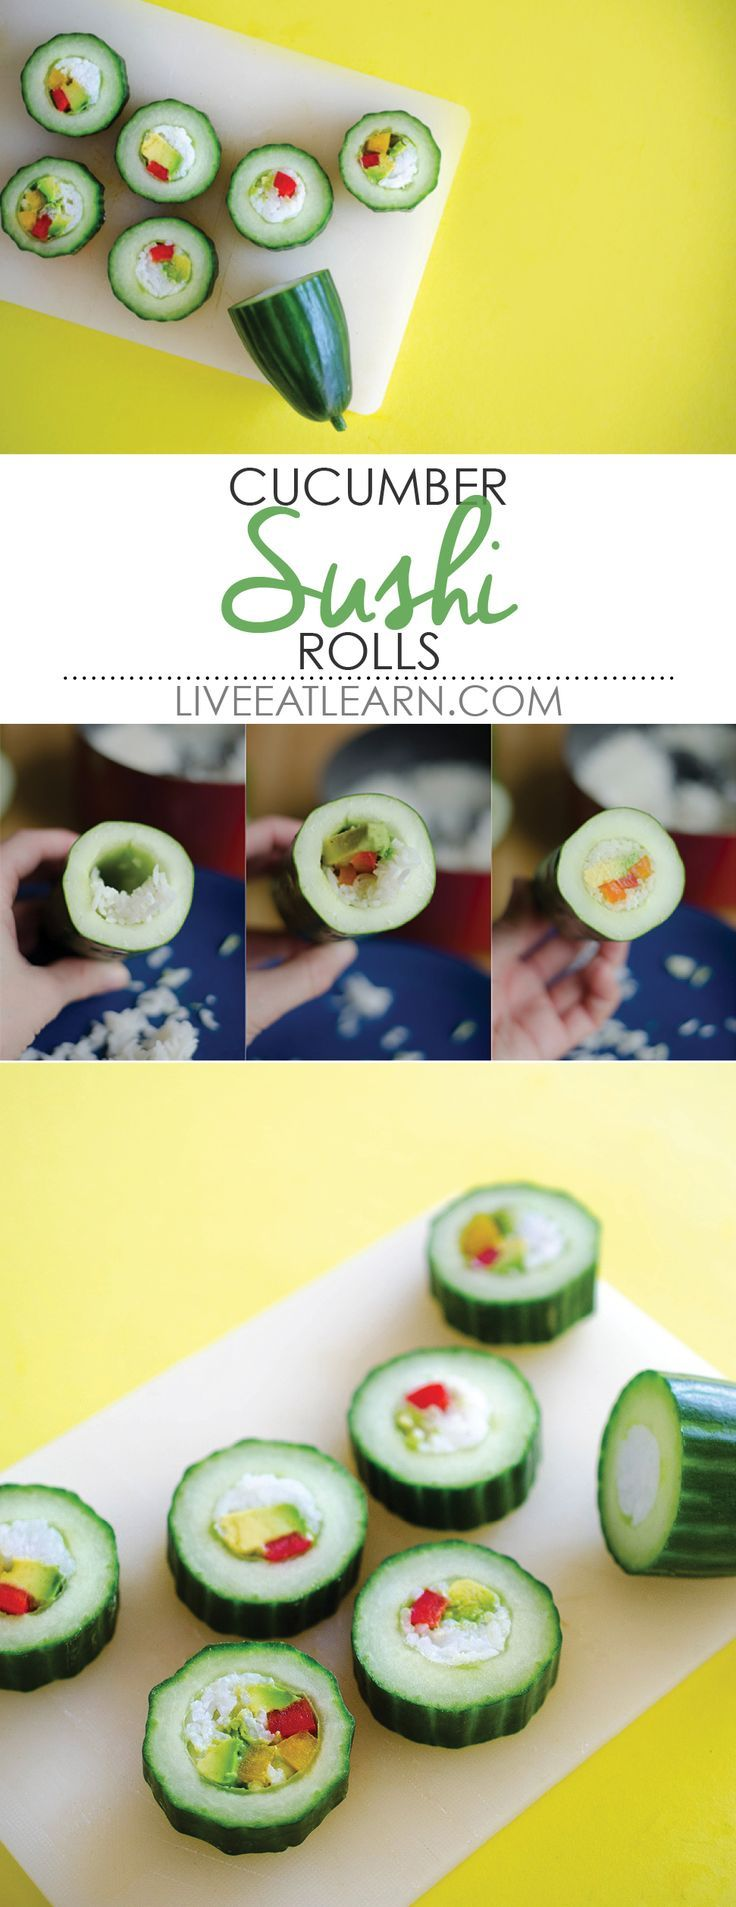 This healthy cucumber sushi roll recipe is an easy and refreshing way to enjoy sushi, without all the hassle! Complete with a spicy sriracha mayo sauce. // Live Eat Learn